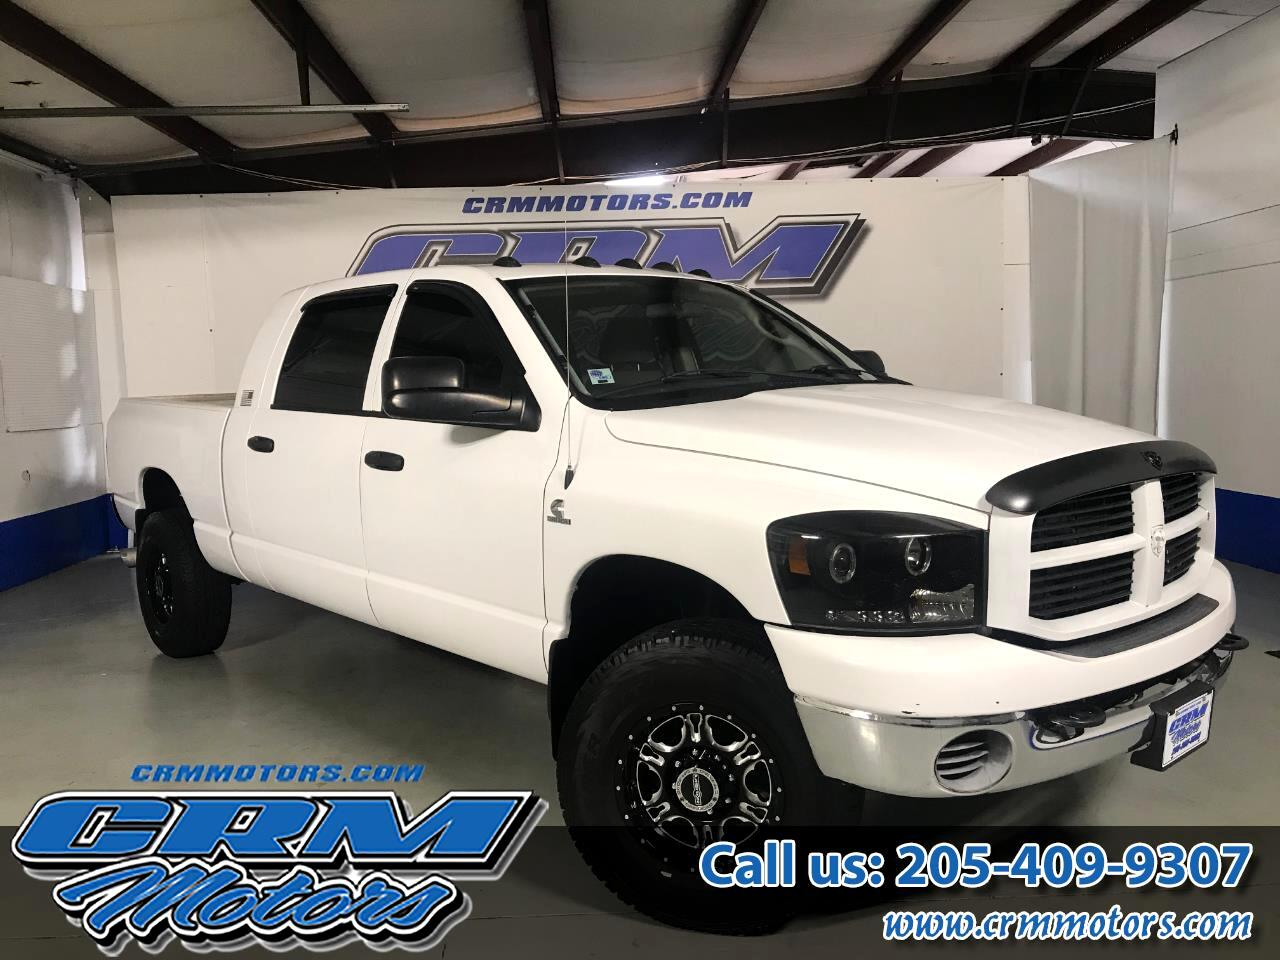 2007 Dodge Ram 3500 4WD MEGA CAB SLT SINGLE WHEEL!